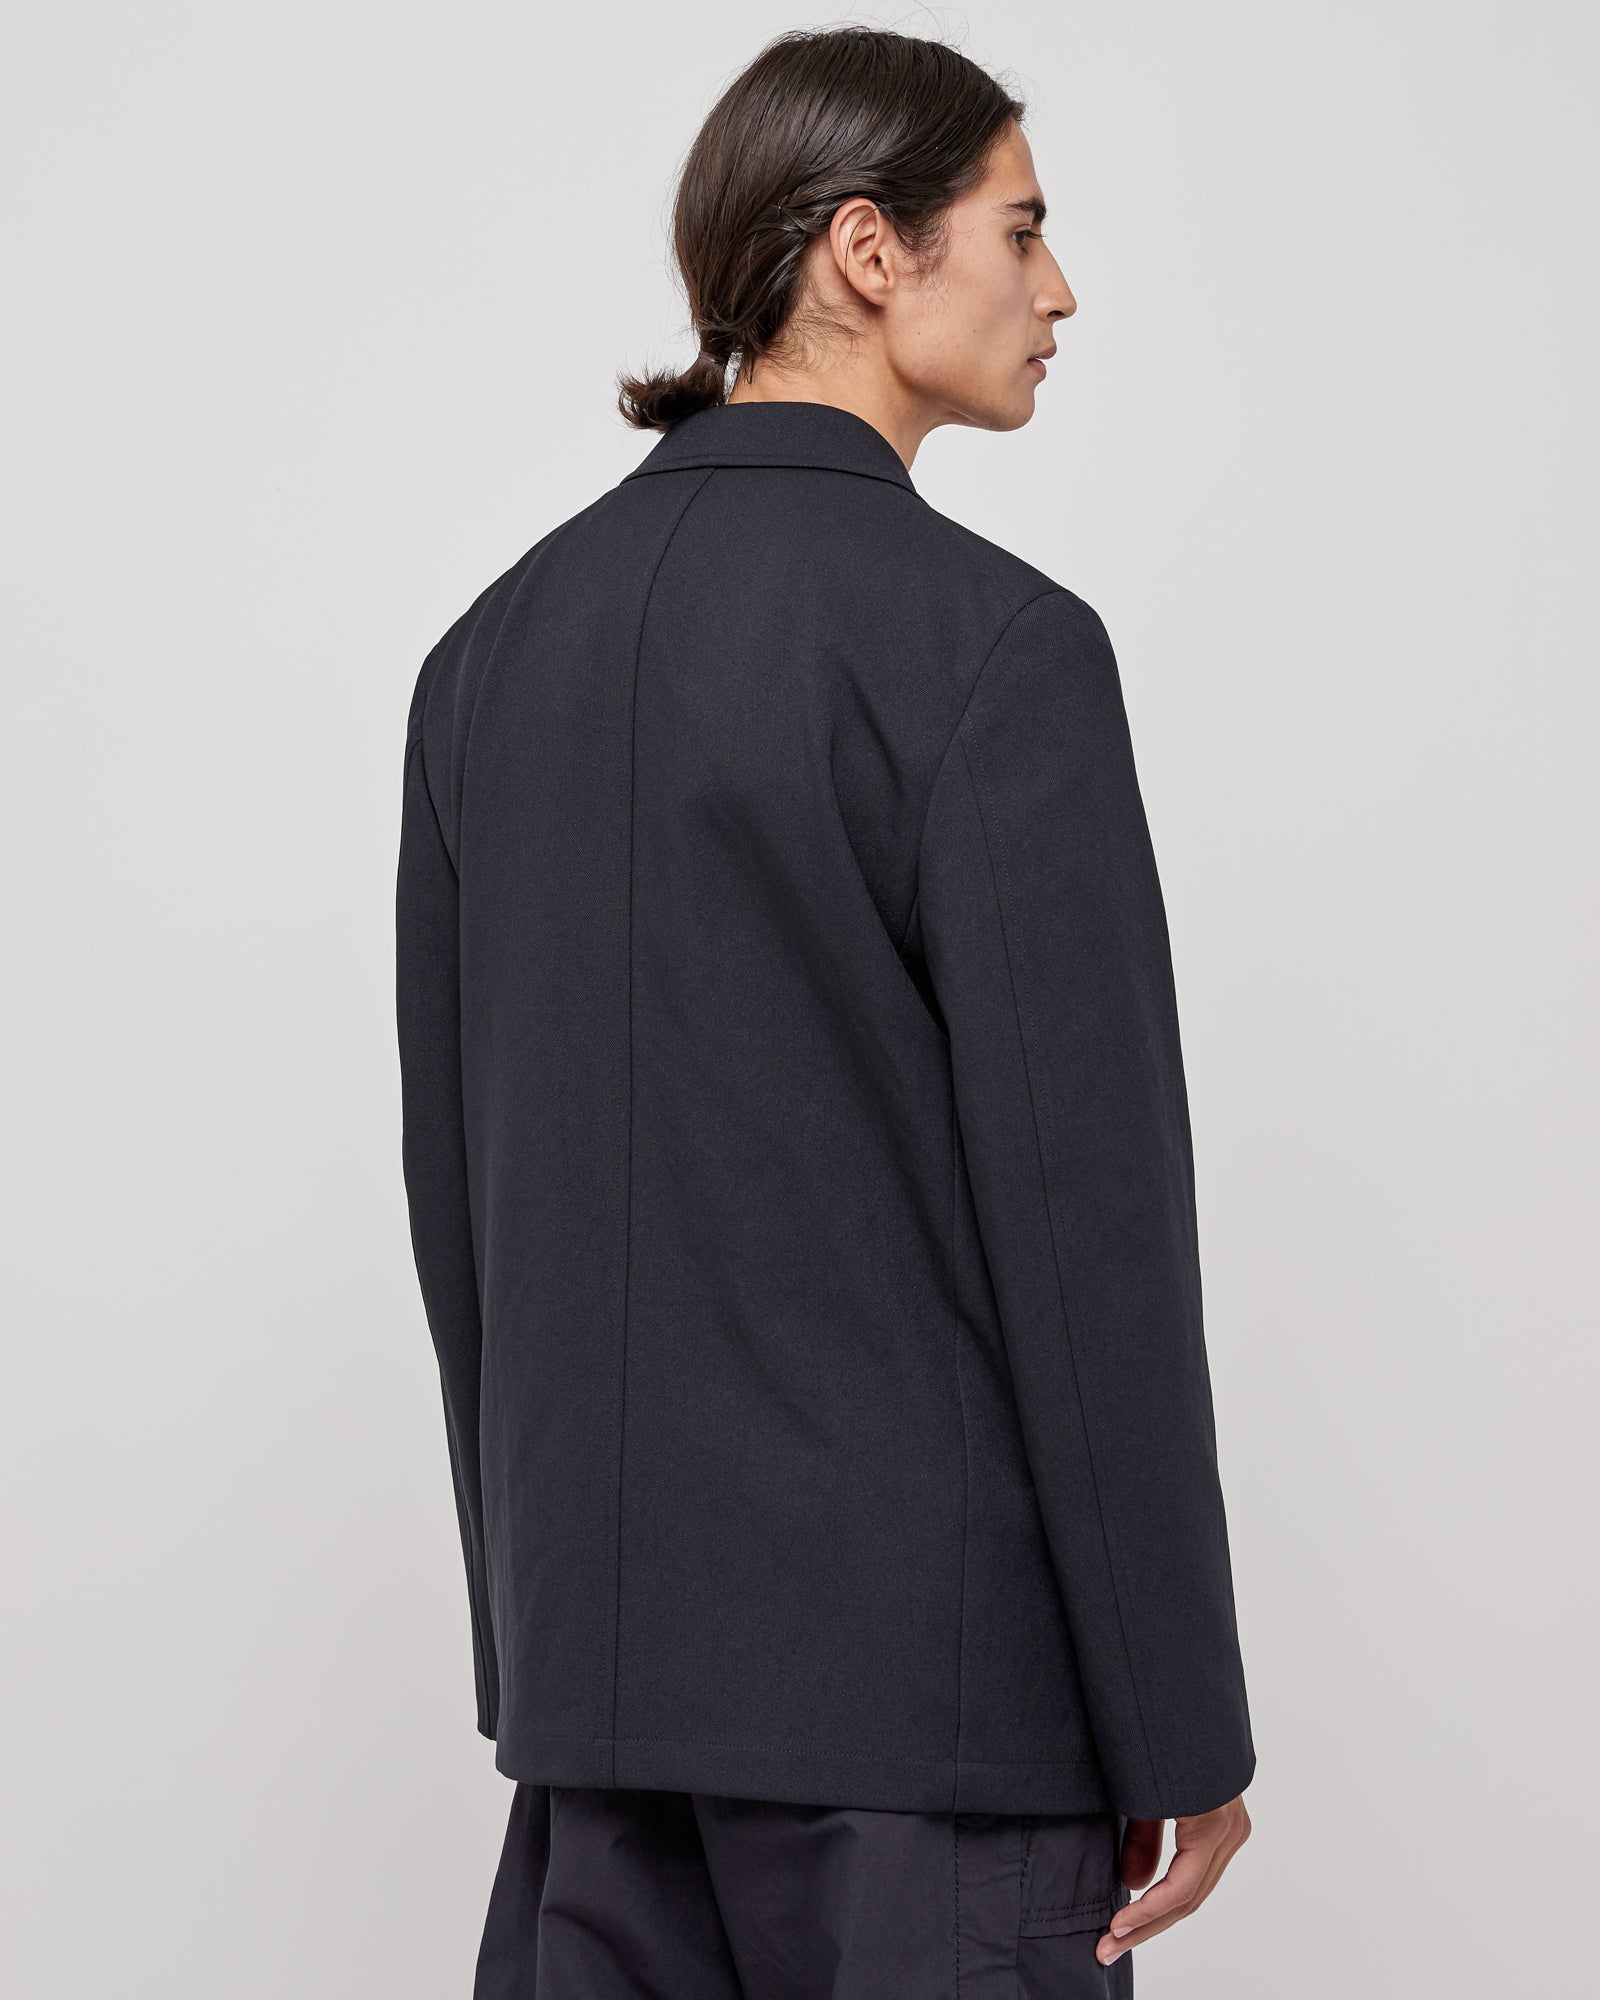 Taylor Jacket in Navy